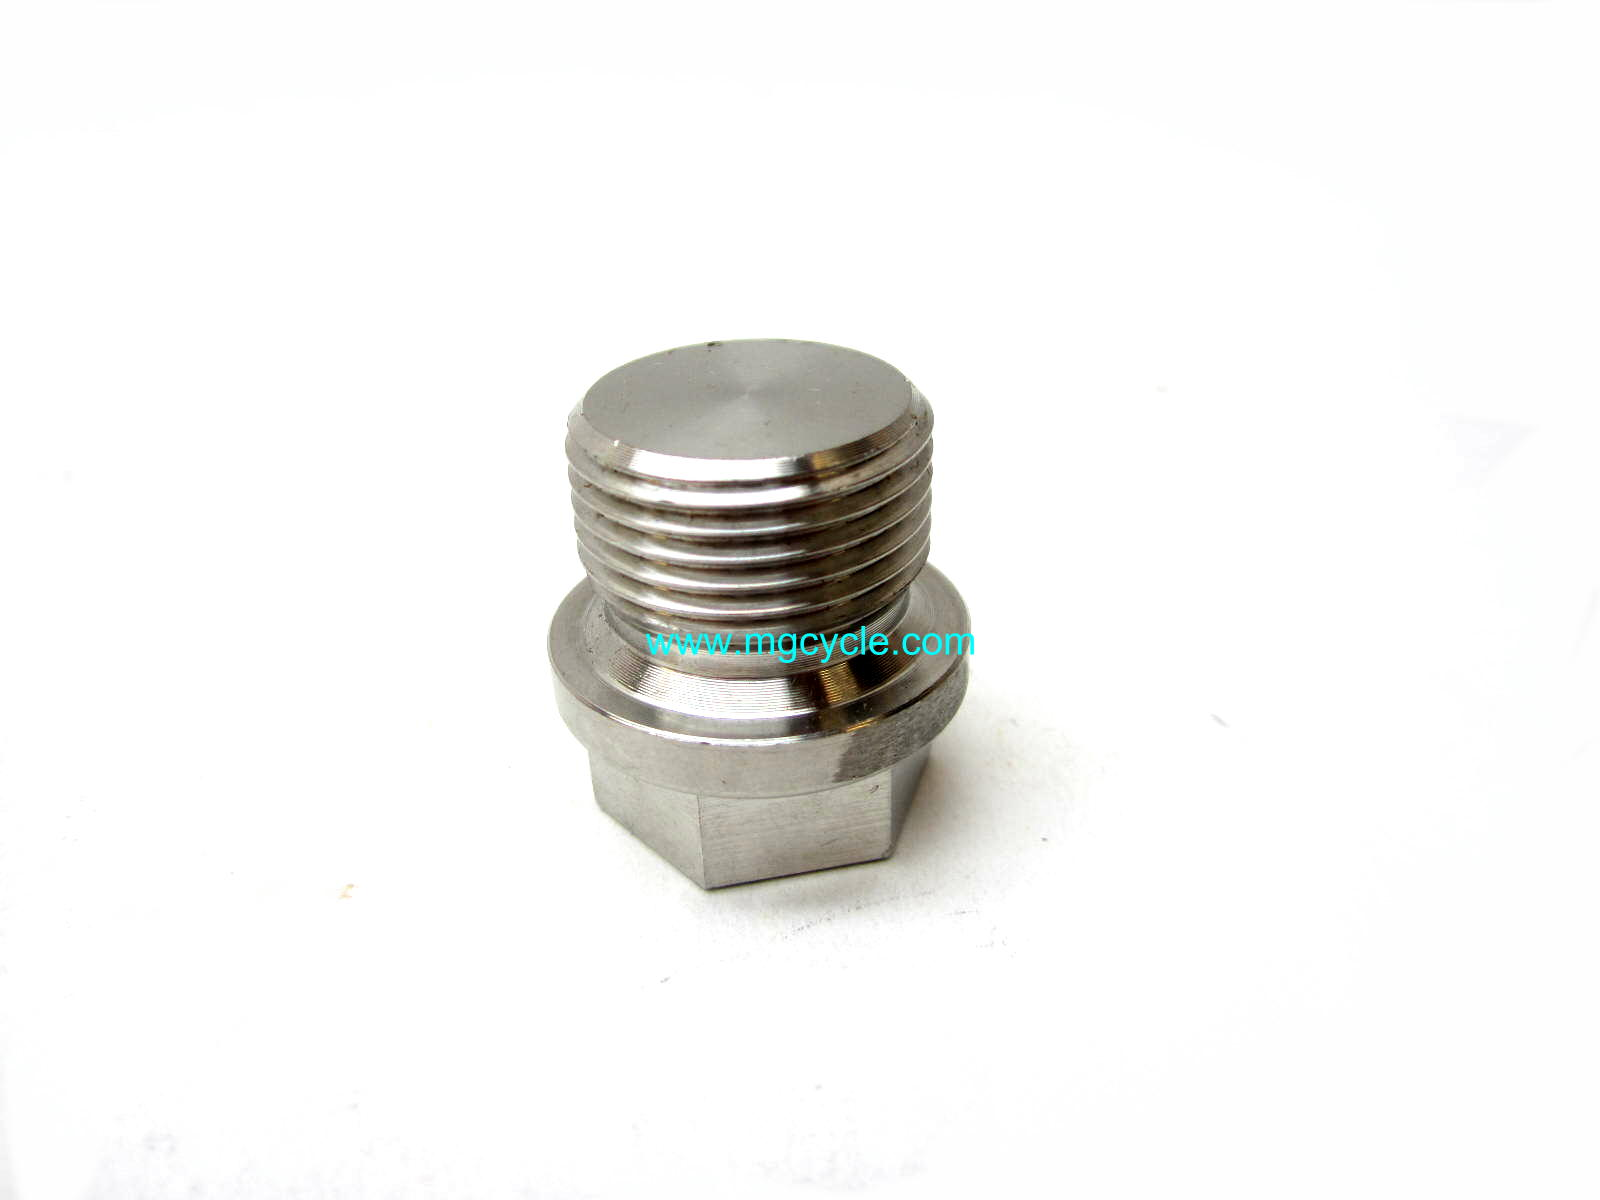 stainless steel oil drain plug, 20mm